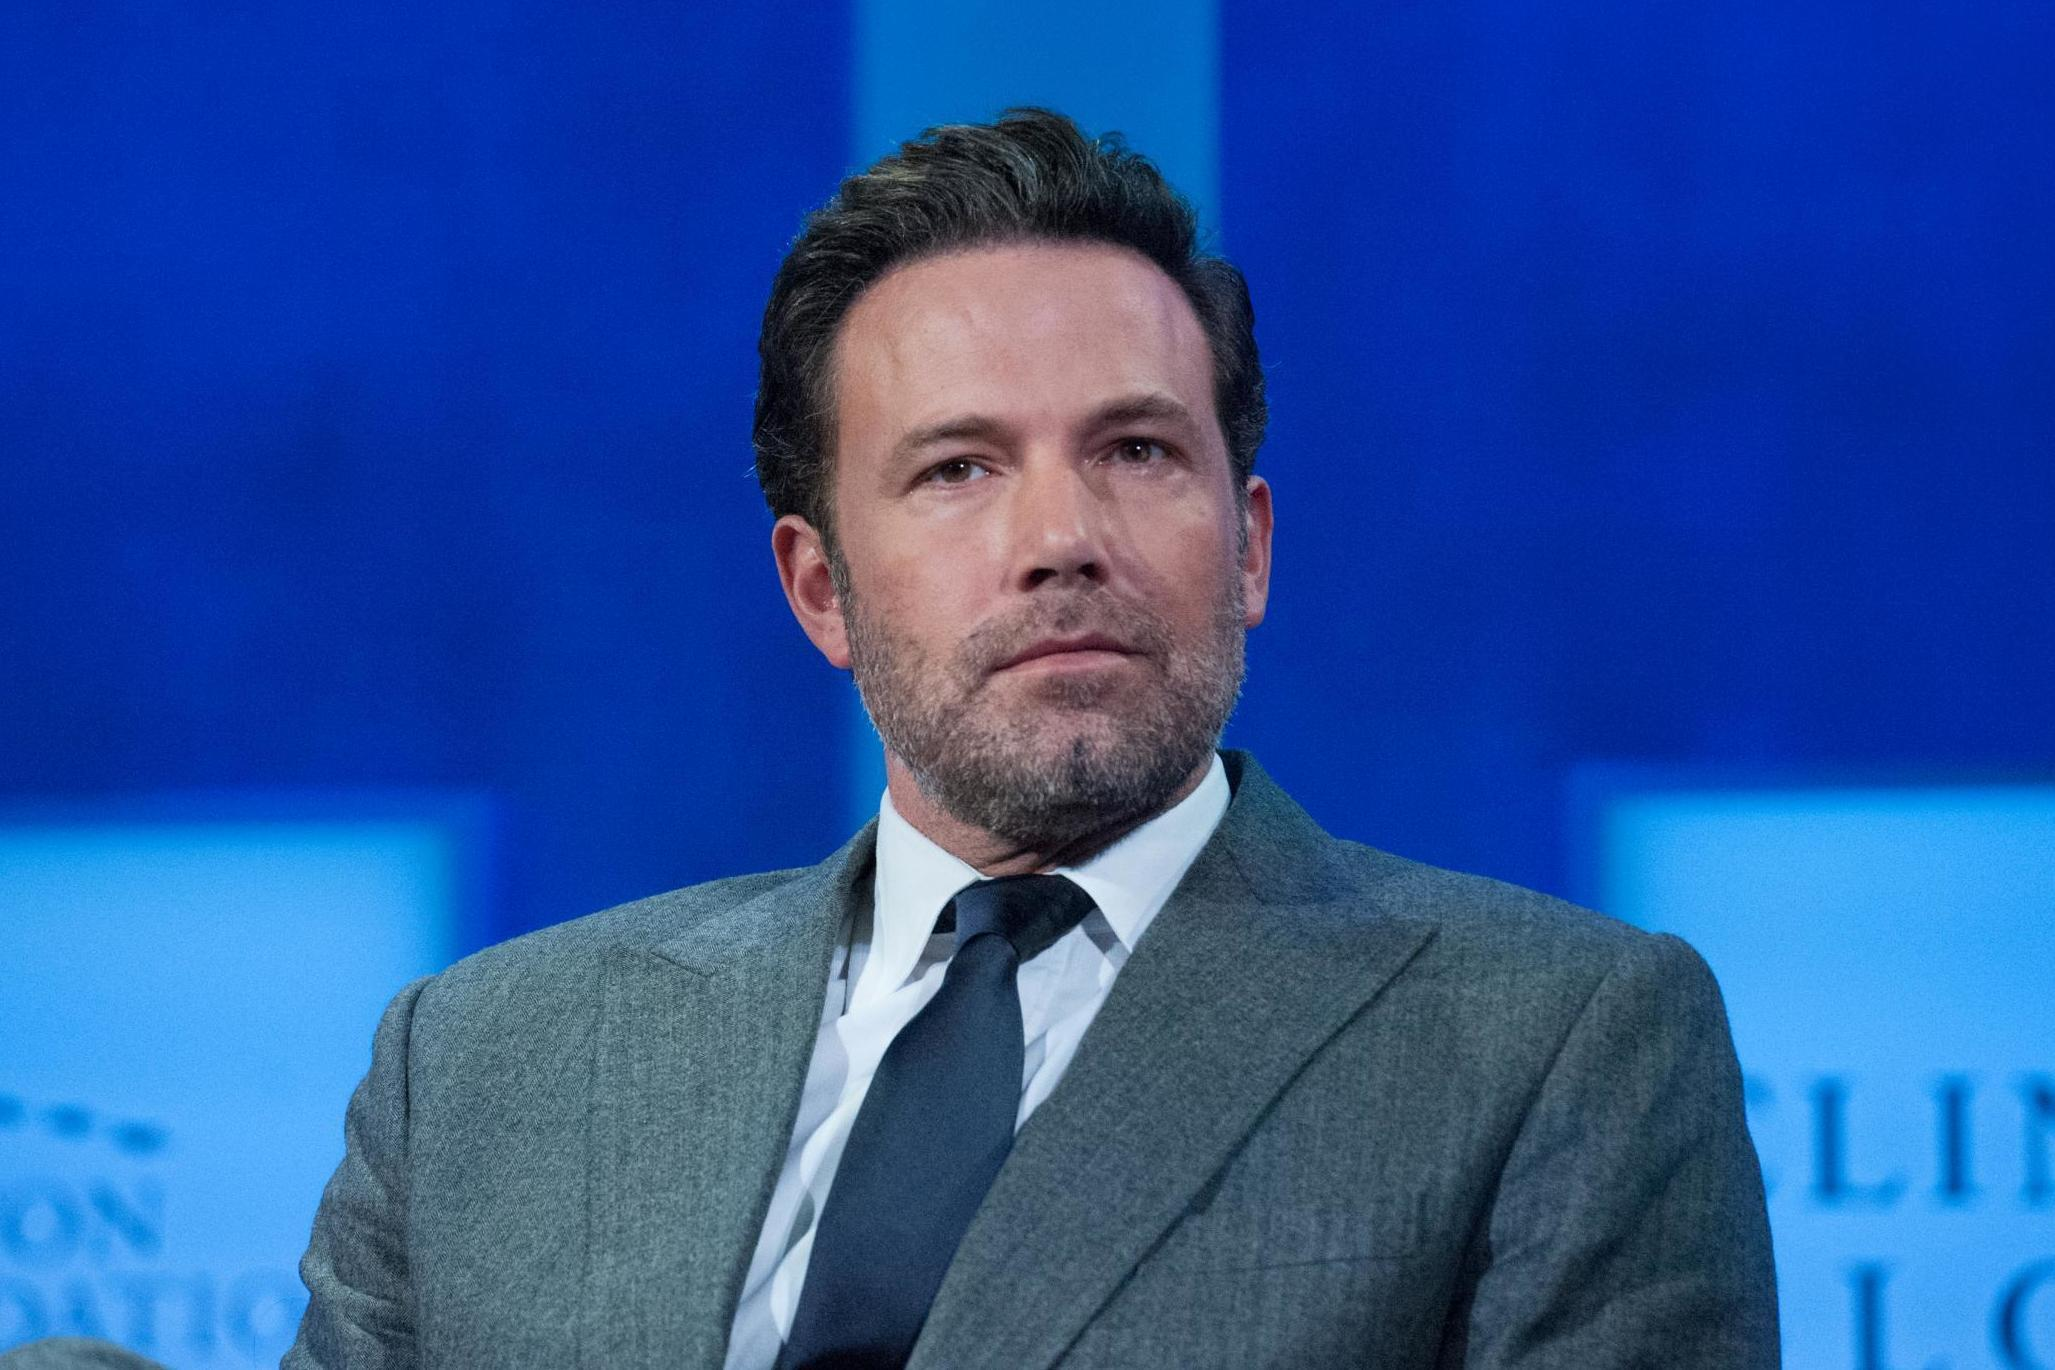 Ben Affleck hits back at The New Yorker article about his tattoo images